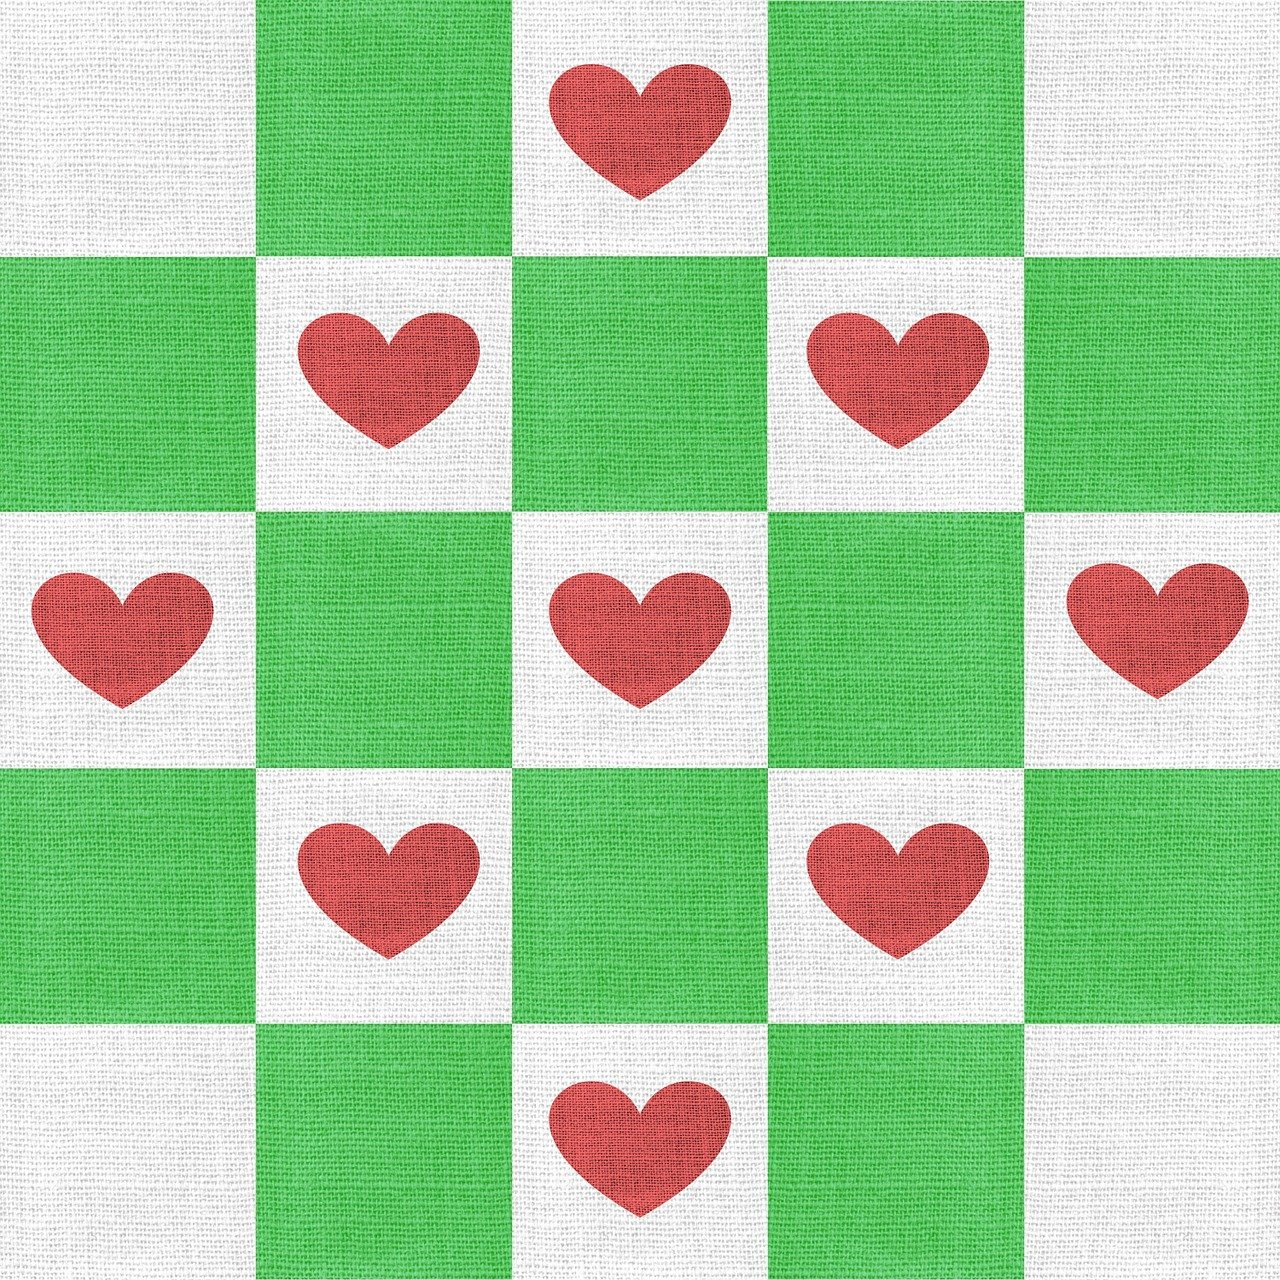 checkerboard with green squares and red hearts